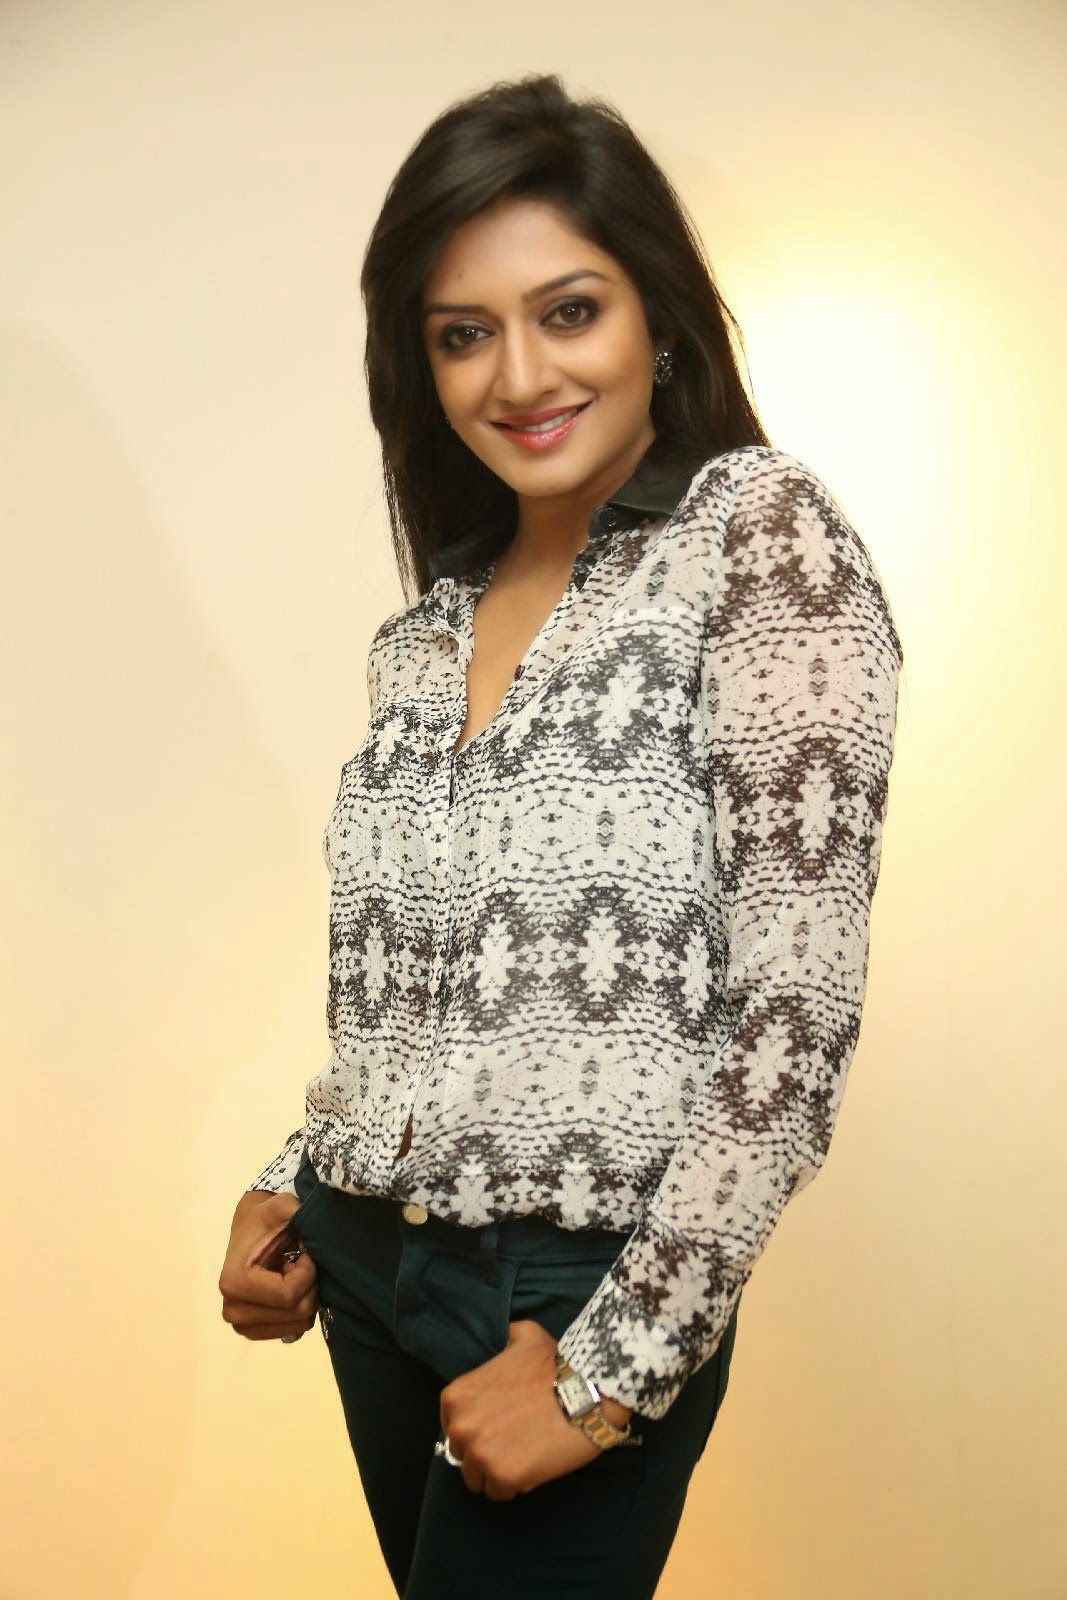 Actress Vimala Raman Latest Cute Hot Spicy Photos Gallery At Solo Art Show to Support Pratyusha Foundation